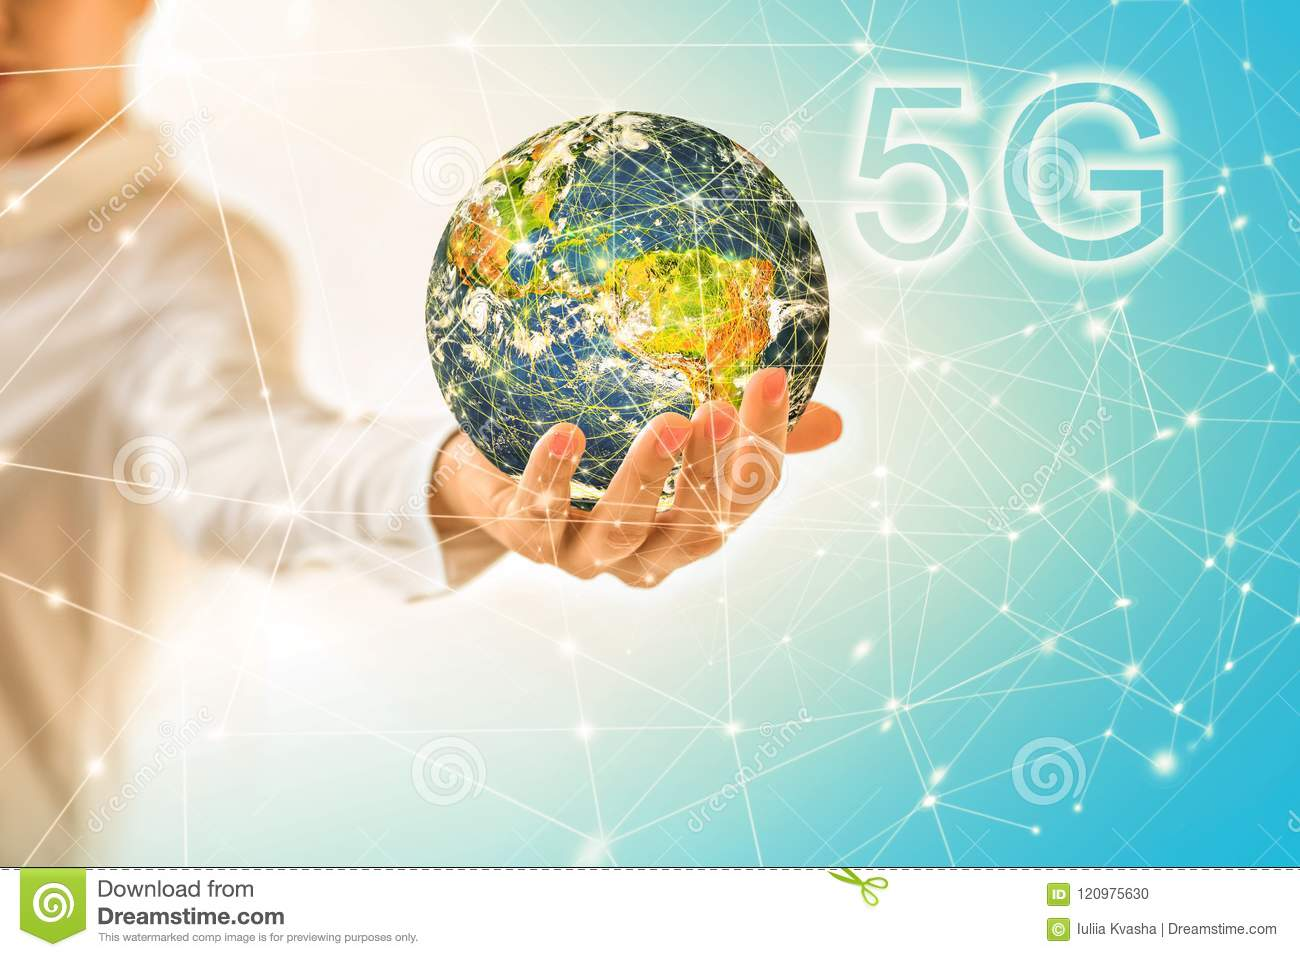 Earth From Space In Hands, Globe In Hands  5G K Internet